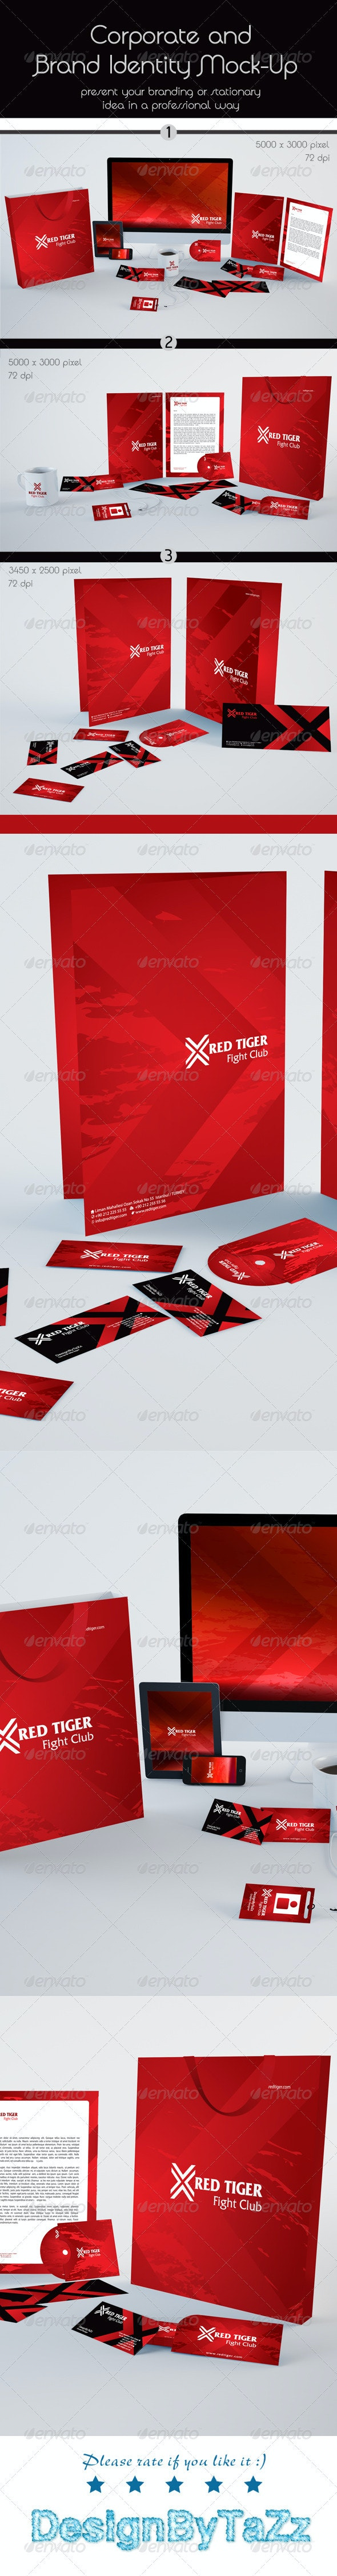 Corporate and Stationery Brand Mock-Up - Stationery Print